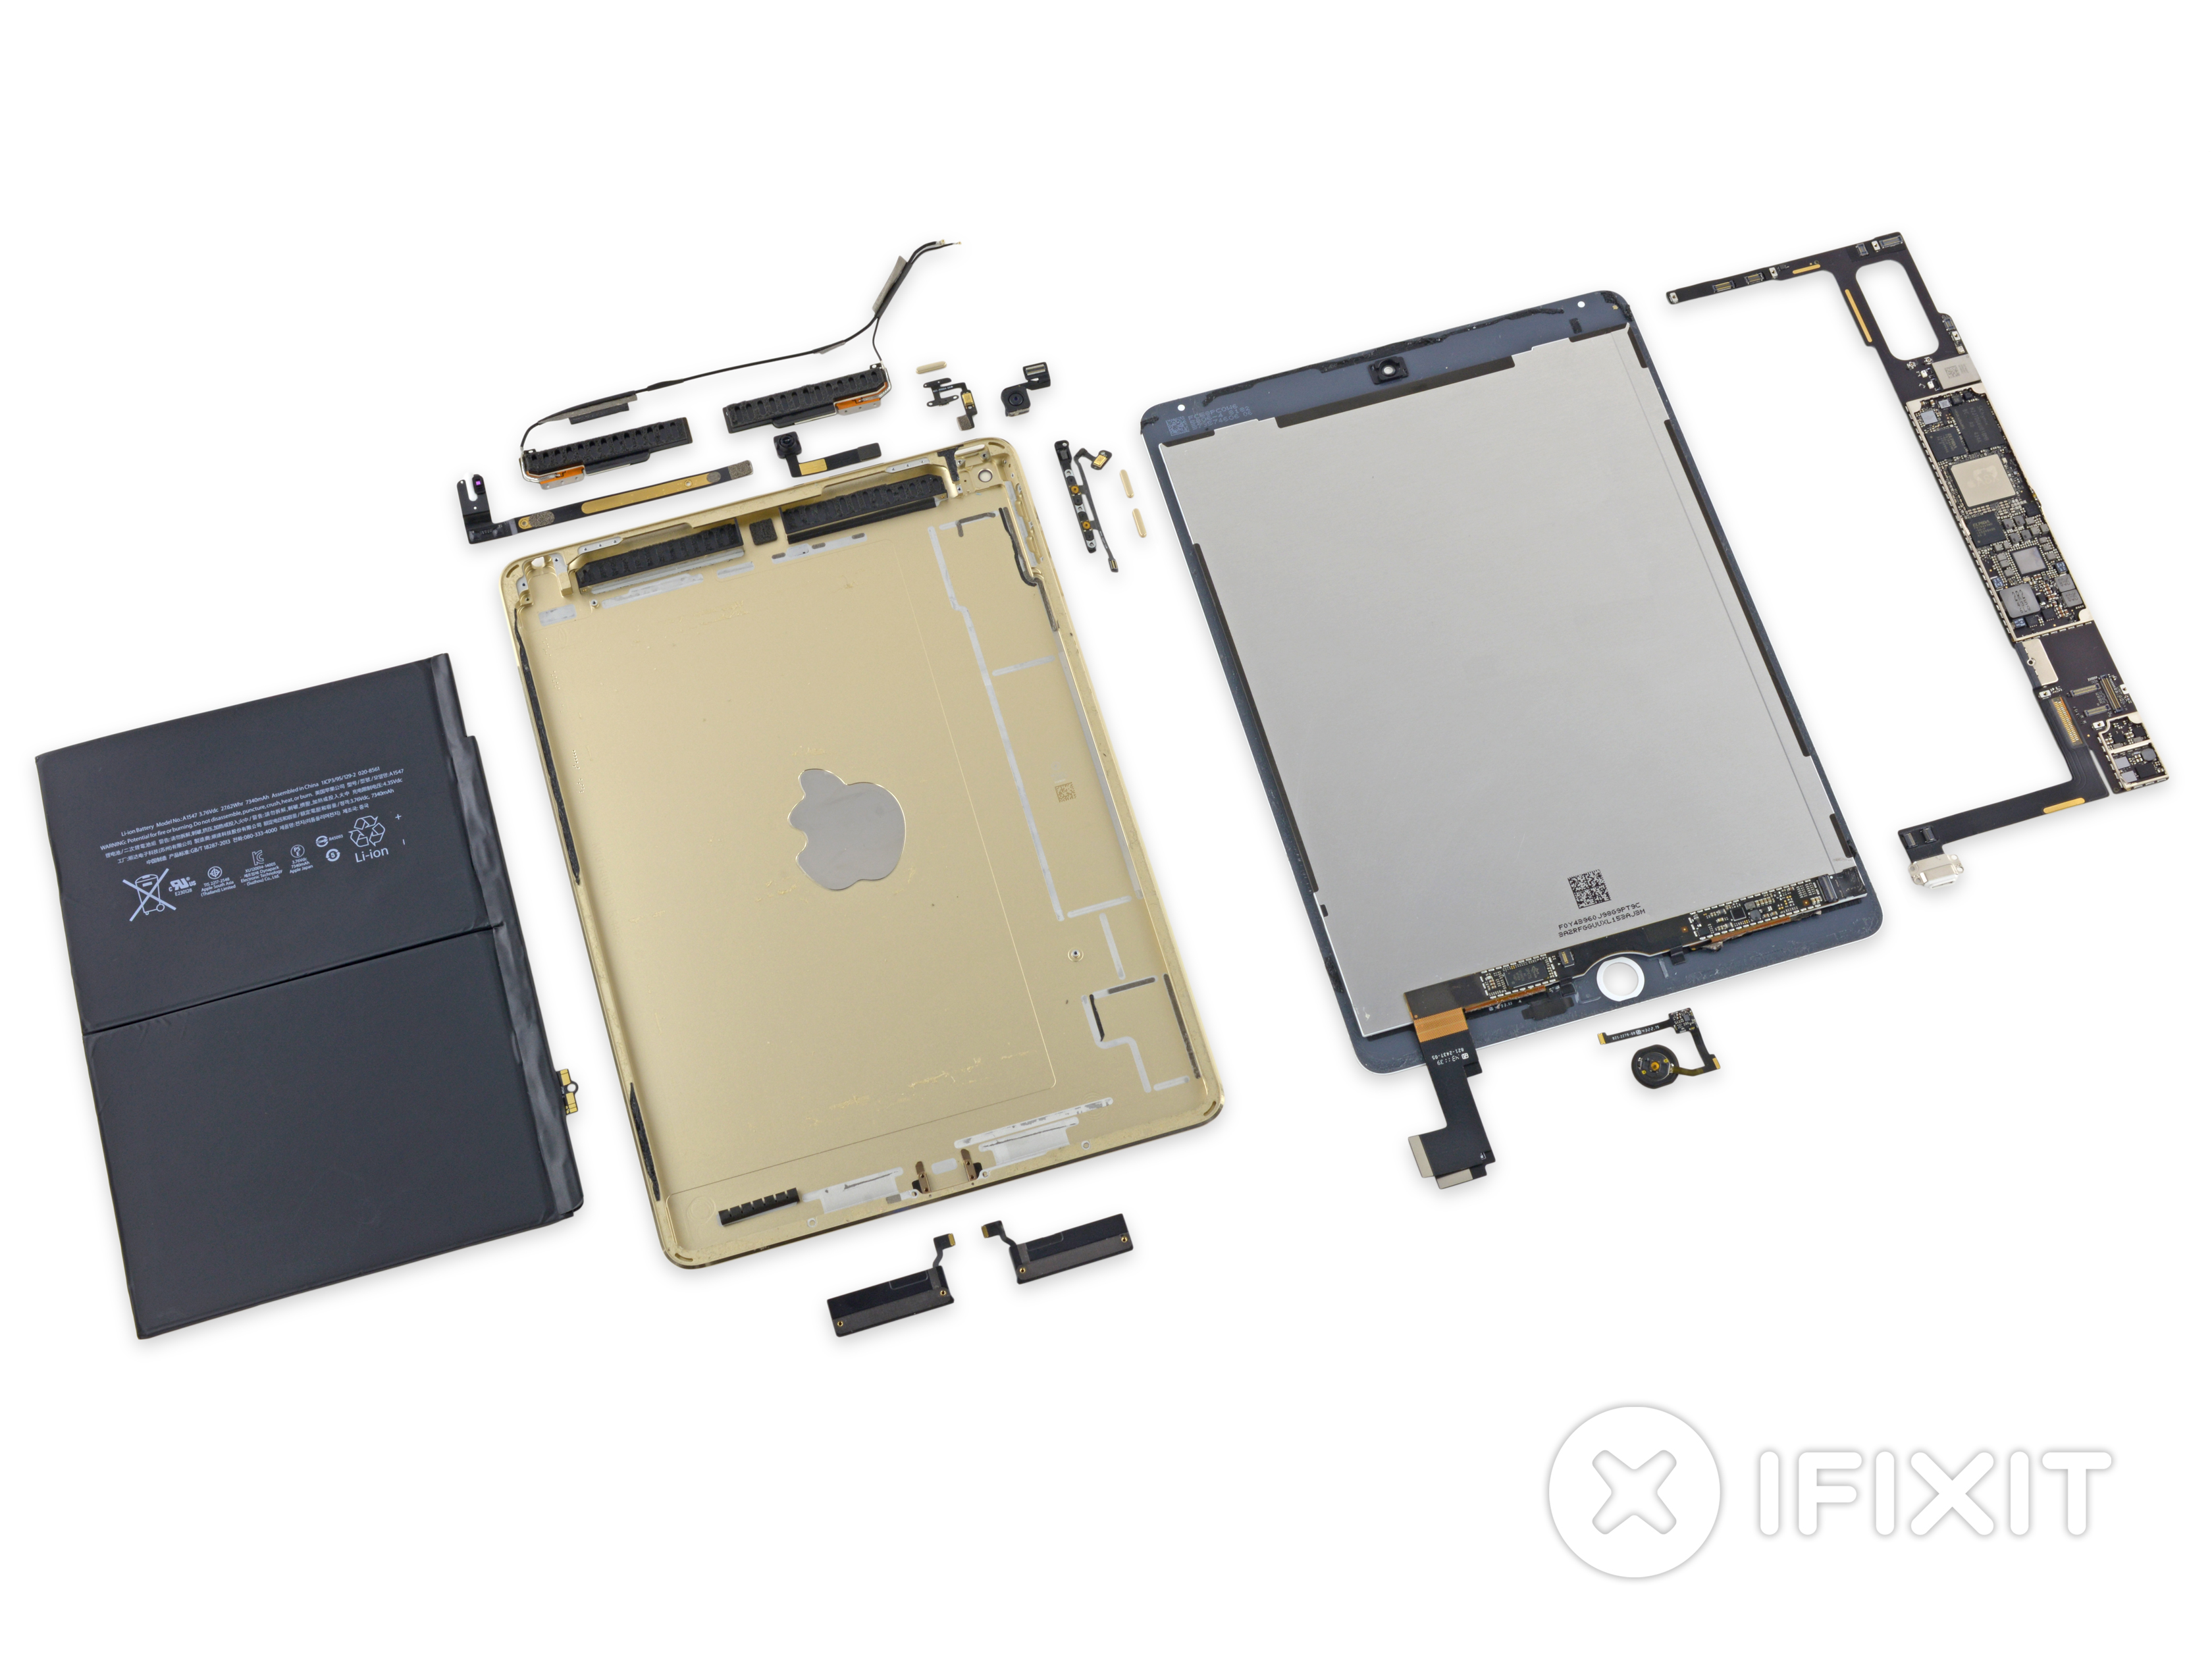 Ipad Air 2 Teardown Ifixit Download Image Voice Activated Circuit Pc Android Iphone And